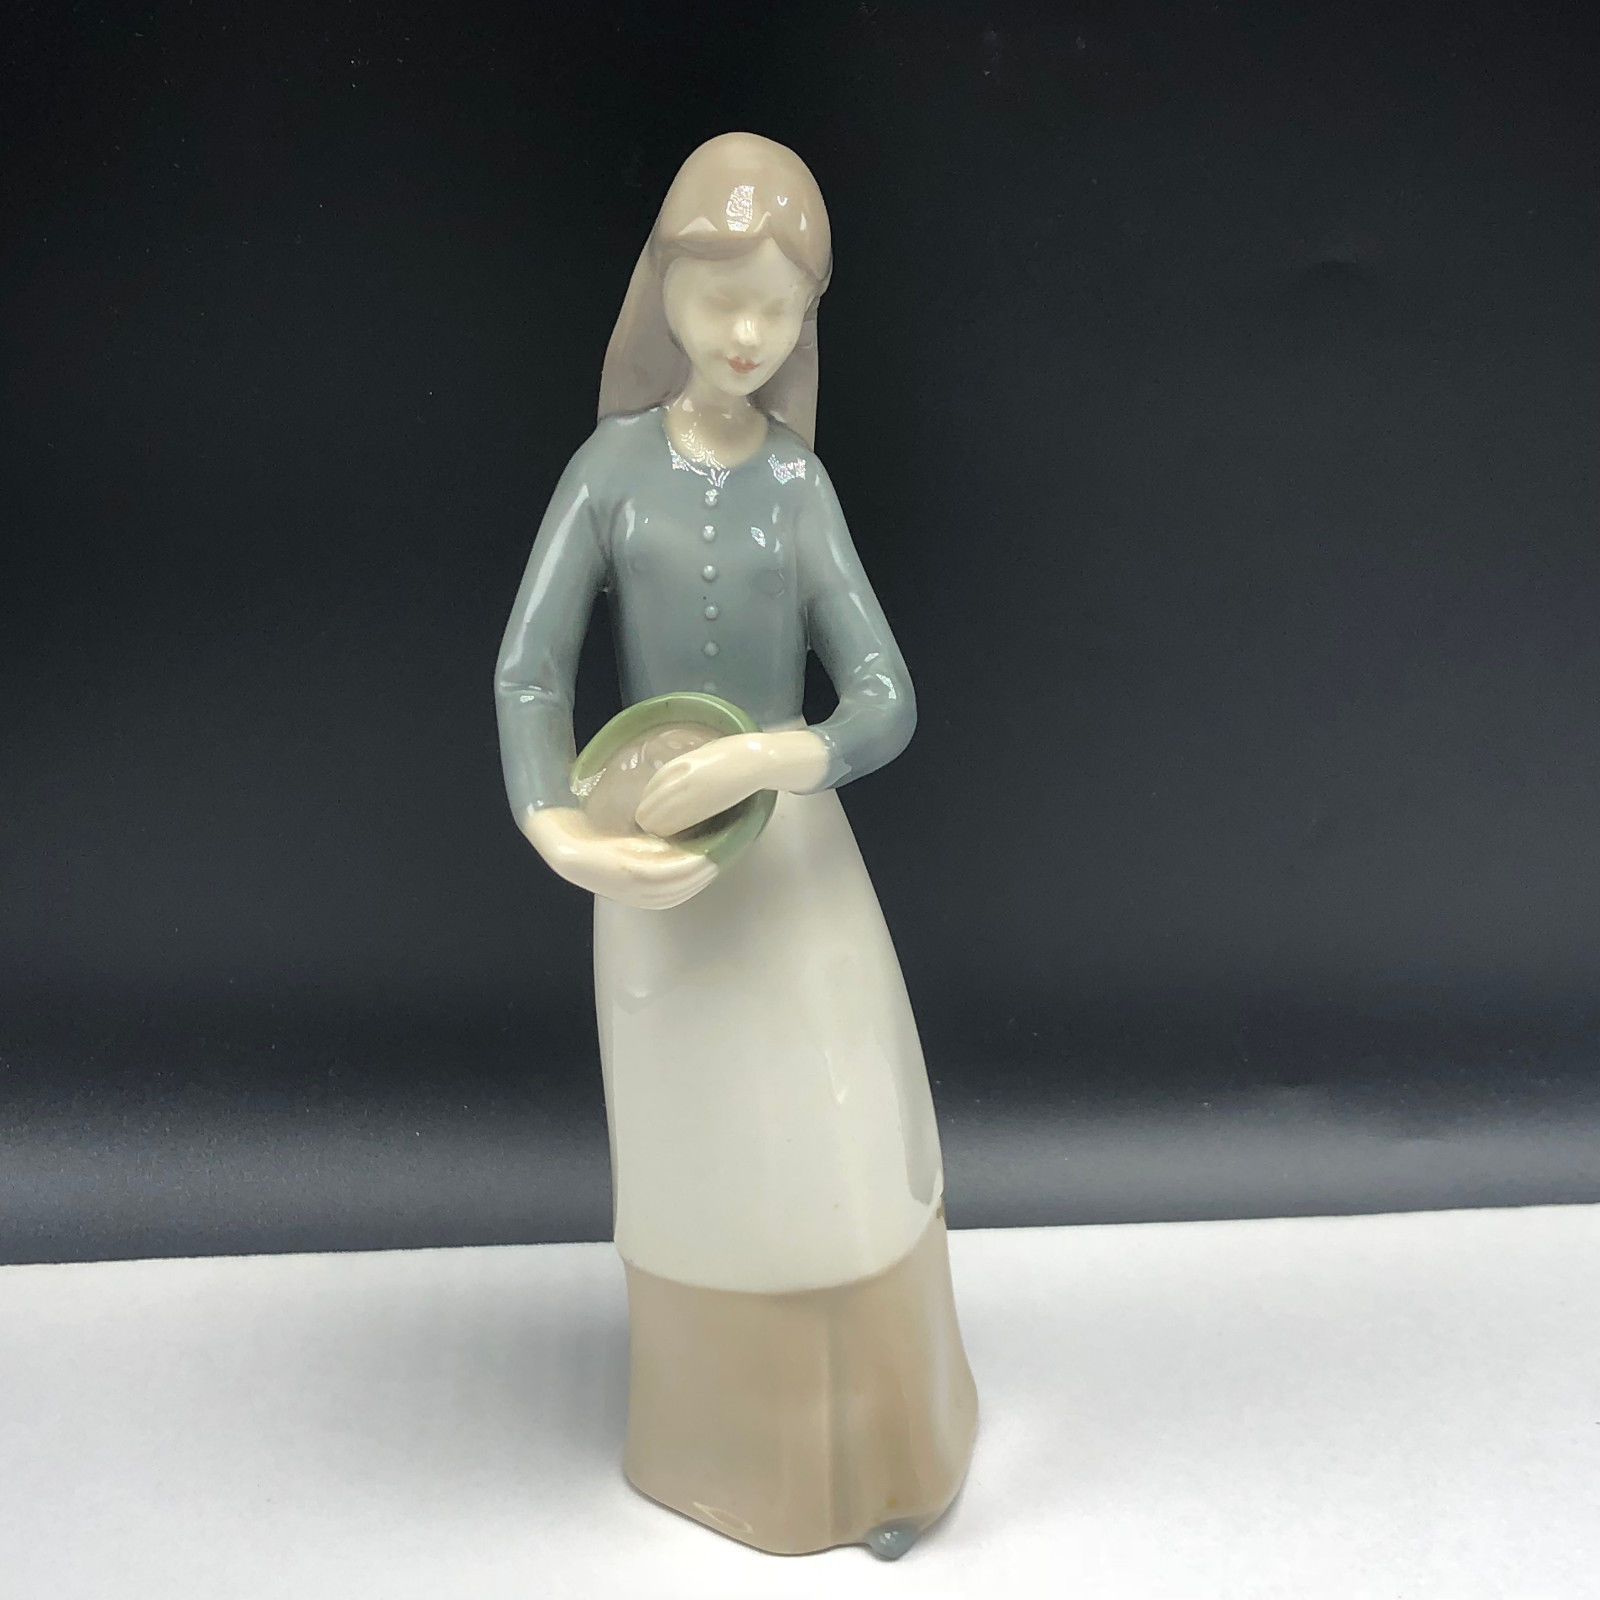 Primary image for VINTAGE PORCELAIN SPAIN FIGURINE statue sculpture eagle crown mark pottery maid